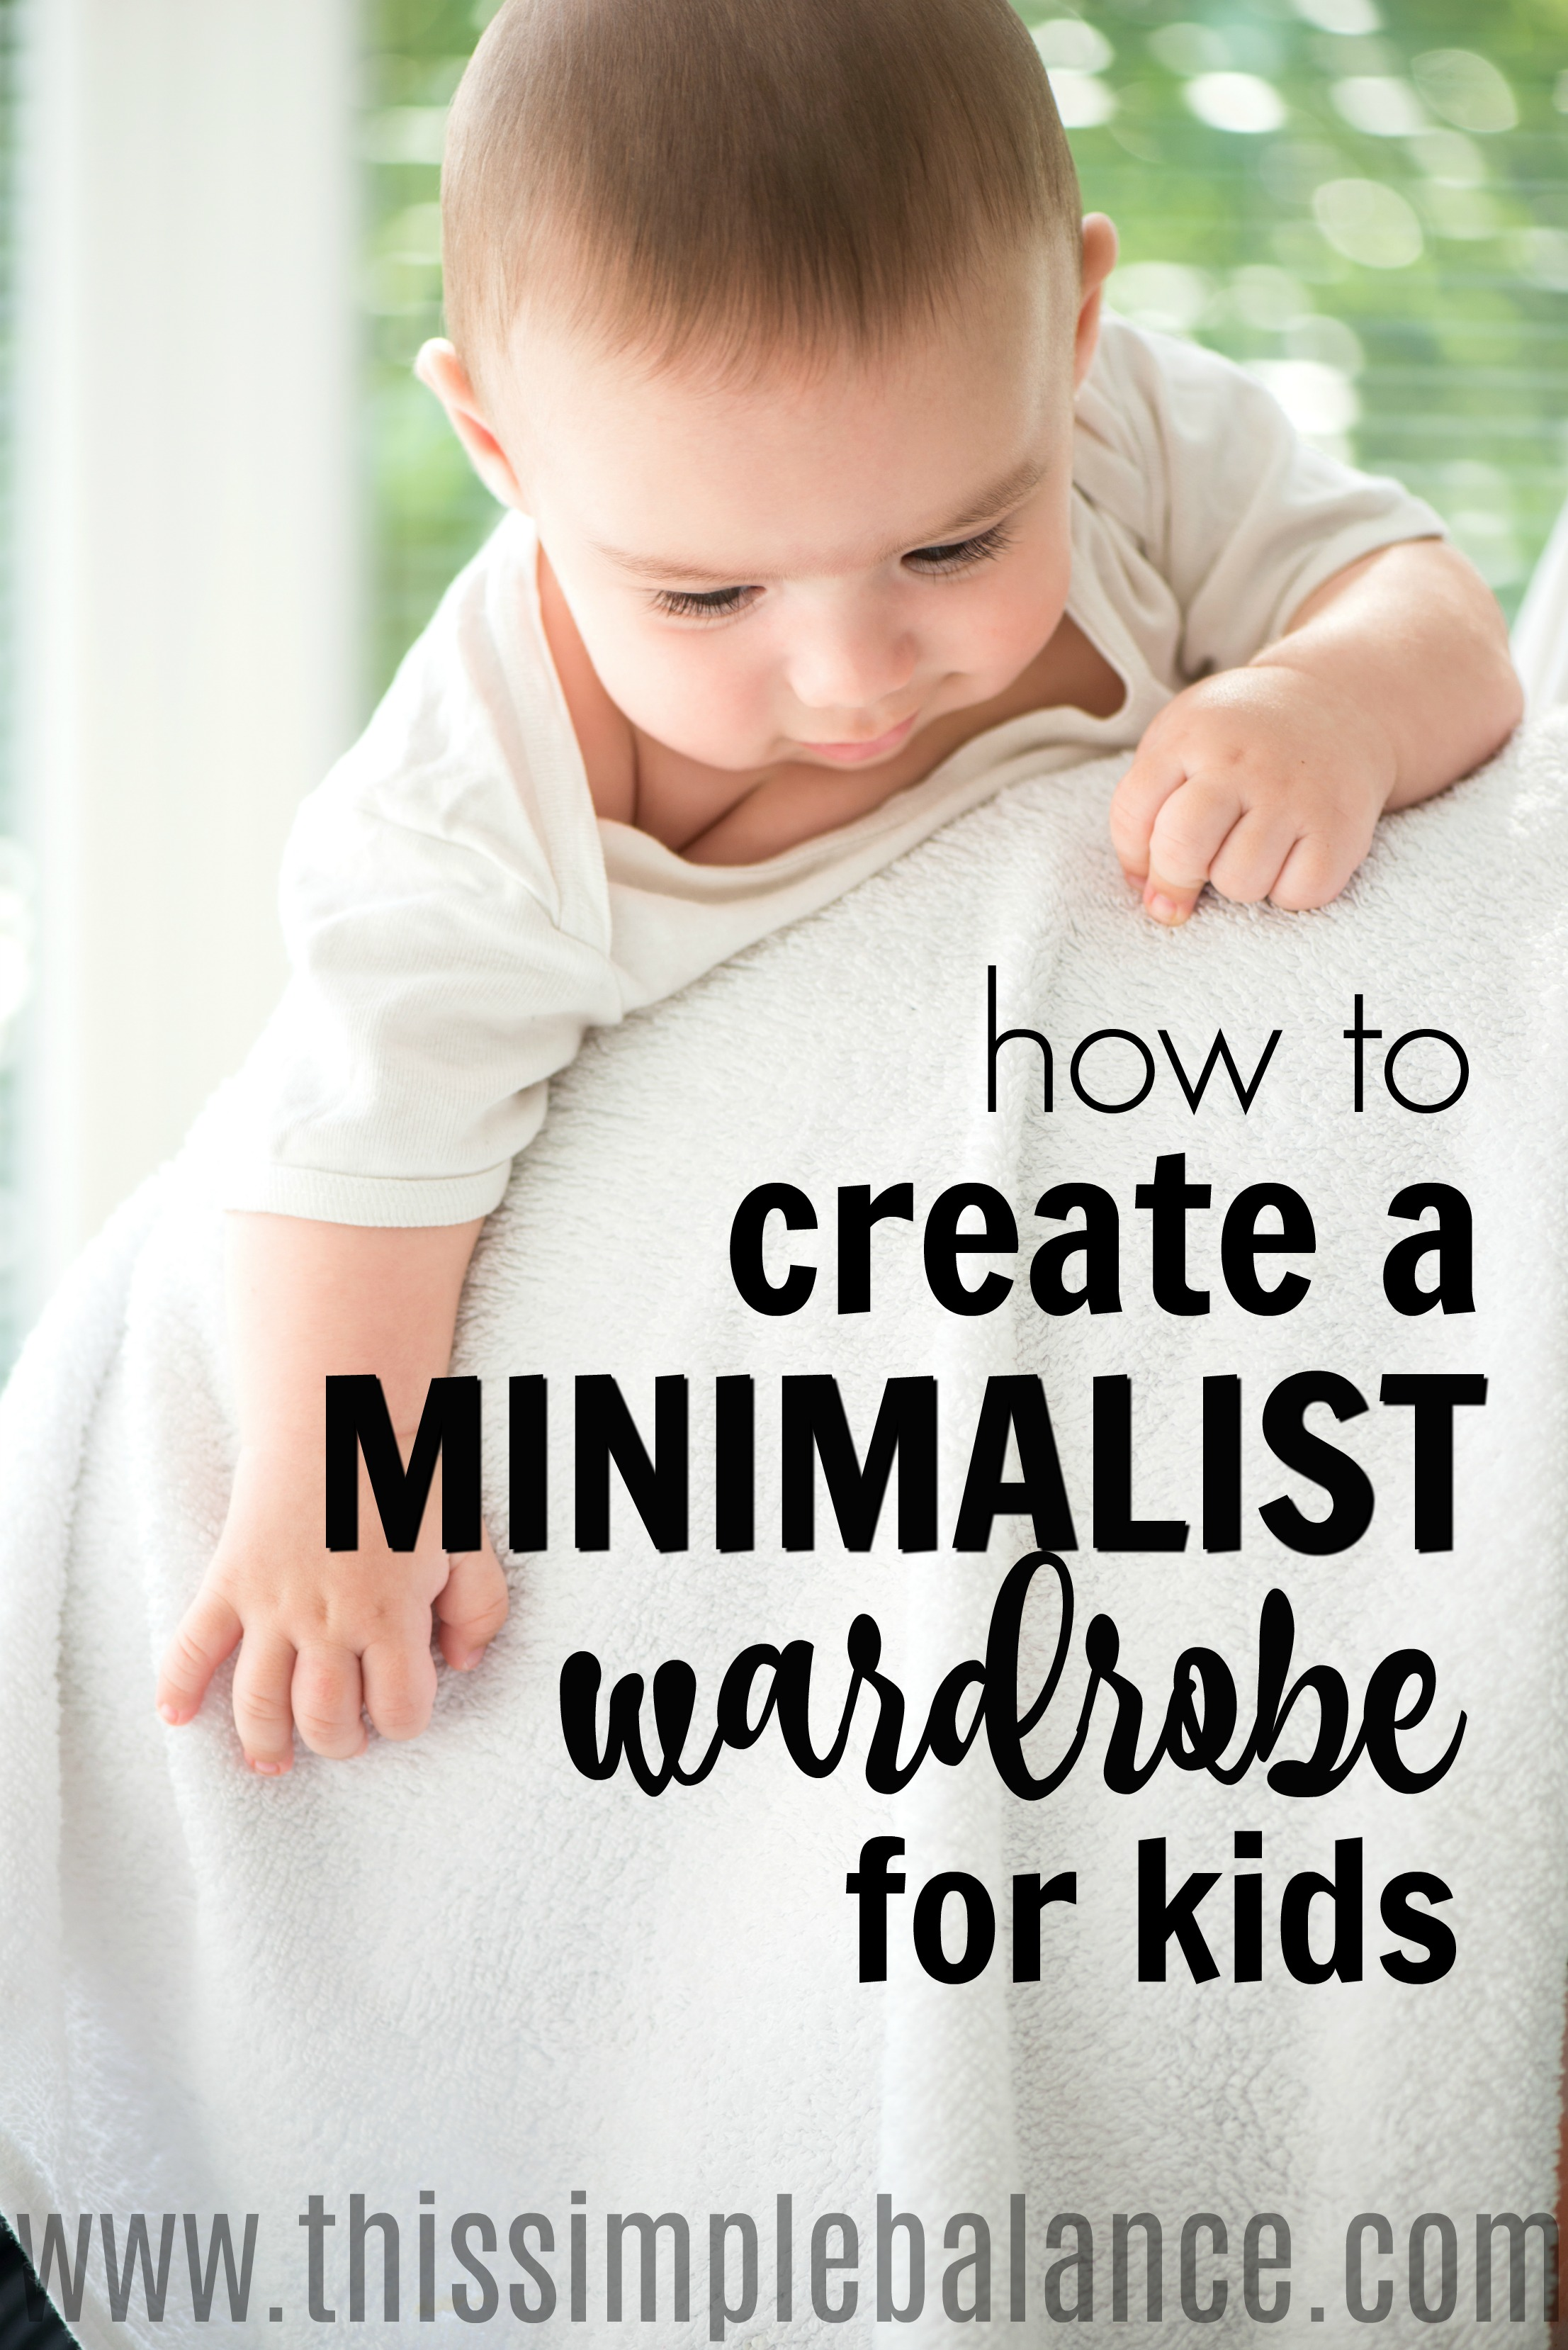 Tired of you (or your child) digging through their drawers trying to find something that matches? Tired of battles over mismatched outfits your child loves and is proud of, but you just can't bear to be seen in public with? I was, too. Try these simple tips for creating a capsule wardrobe for kids - inexpensively! #minimalist #minimalismwithkids